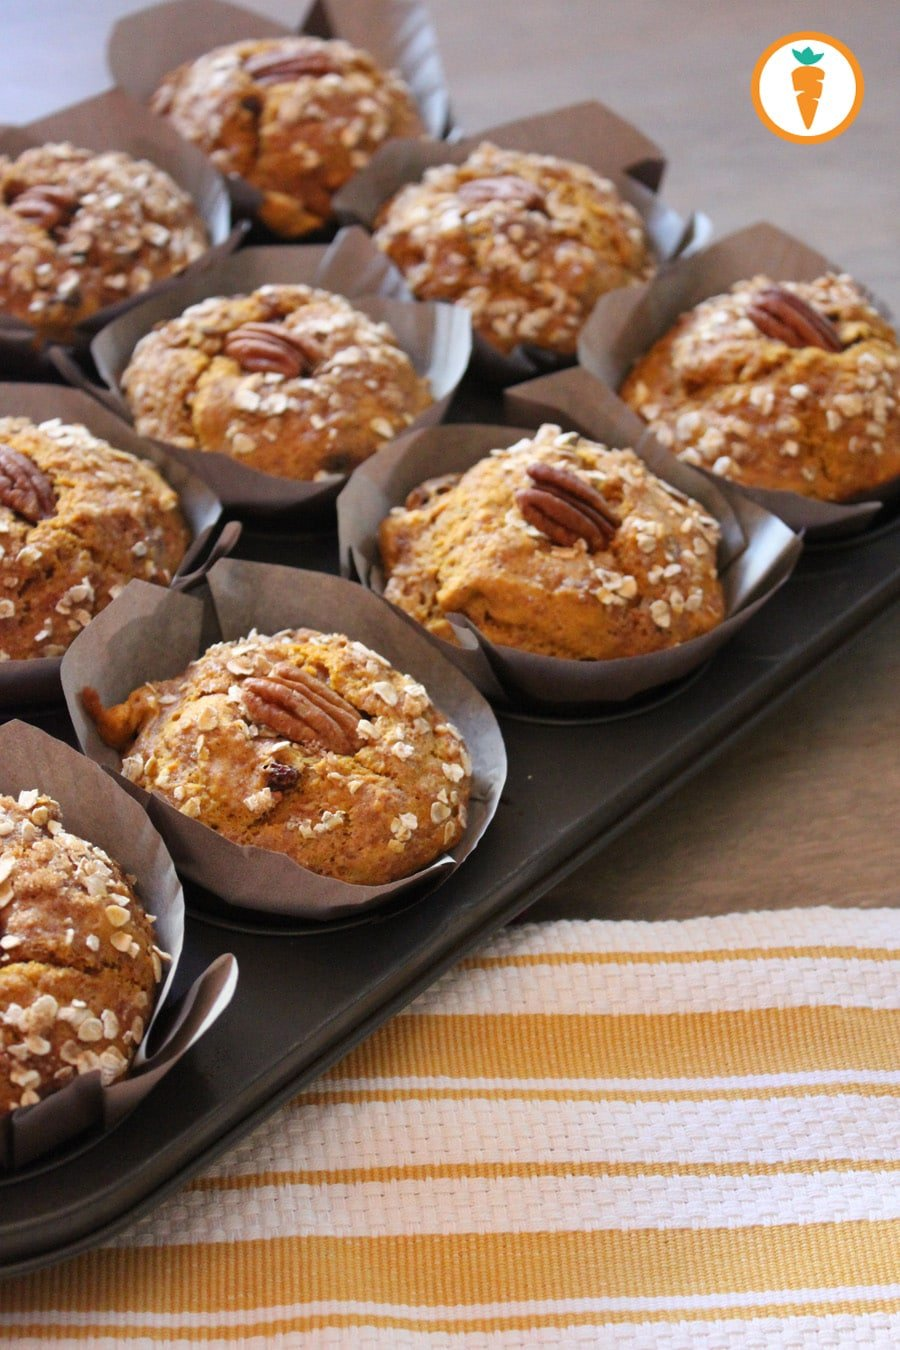 Carrots_and_Cake_Pumpkin_Pecan_Muffins.jpg